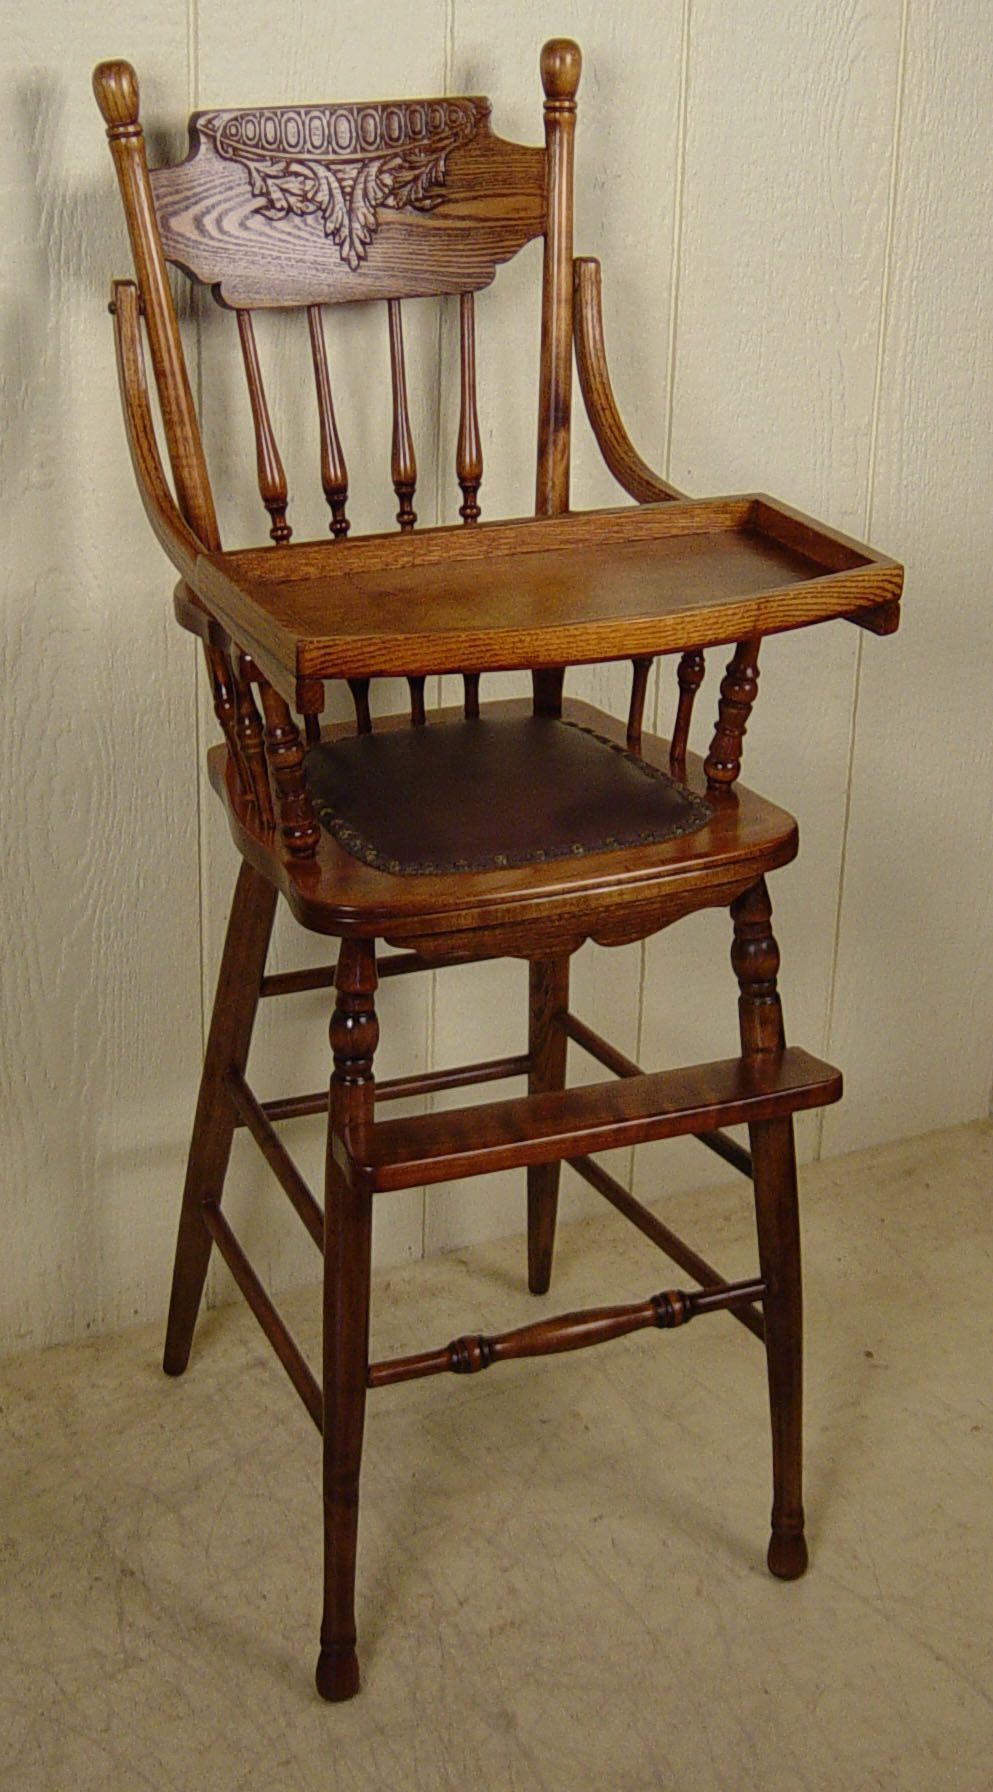 Antique High Chairs, Wooden High